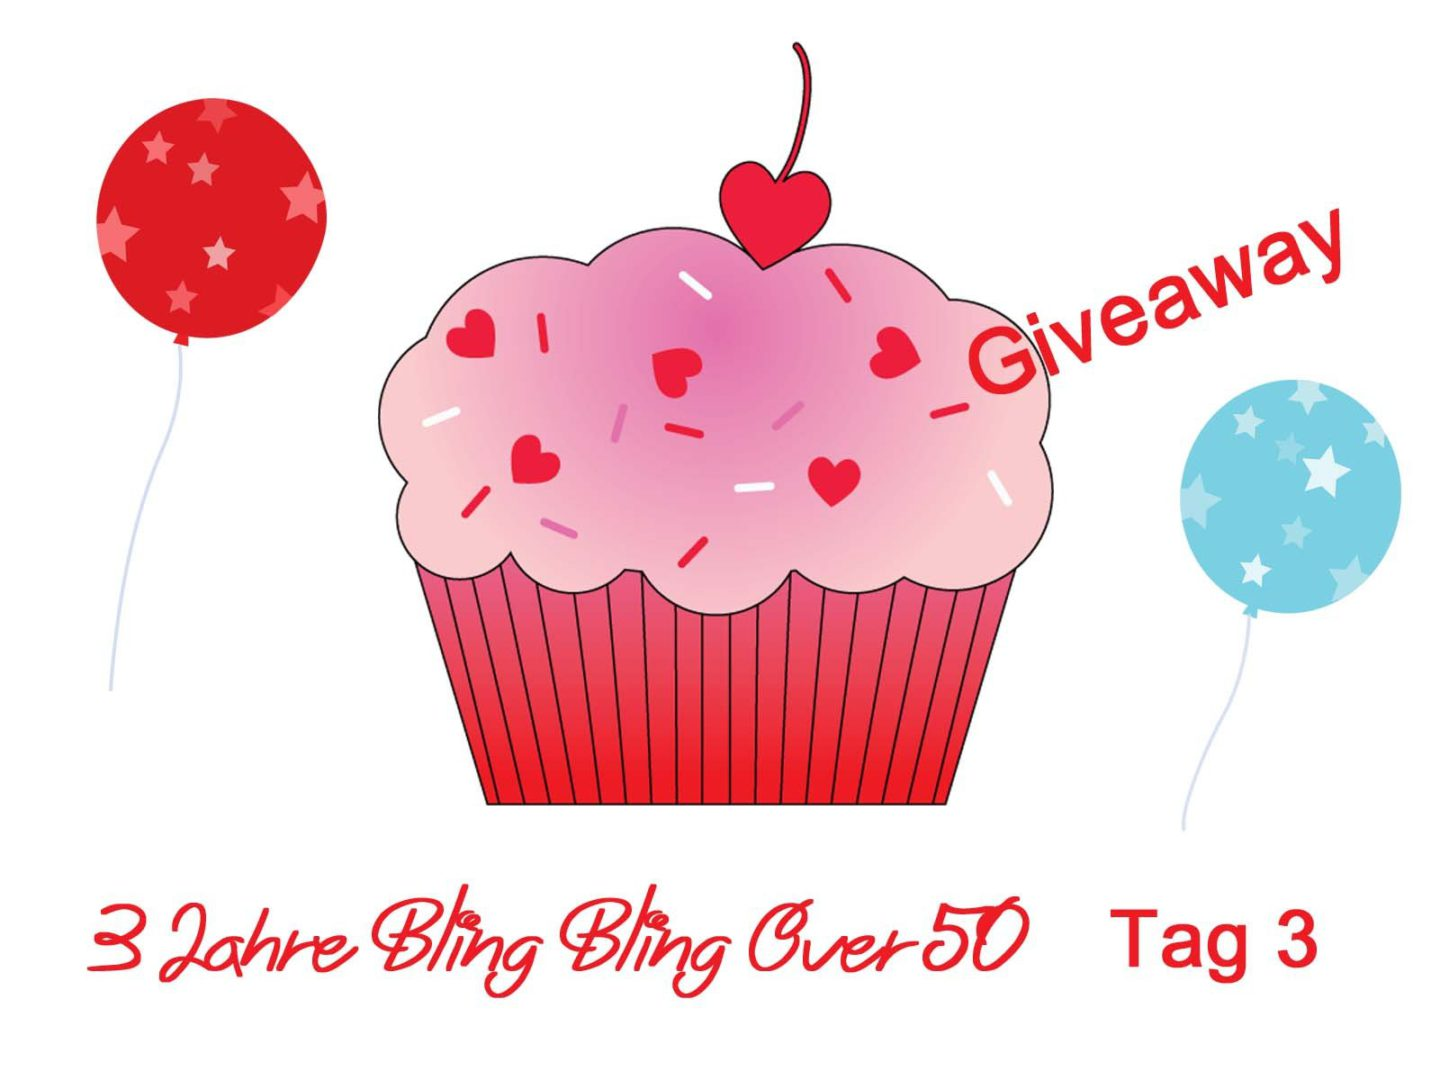 3 Jahre Bling Bling Over 50 – Giveaway Tag 3